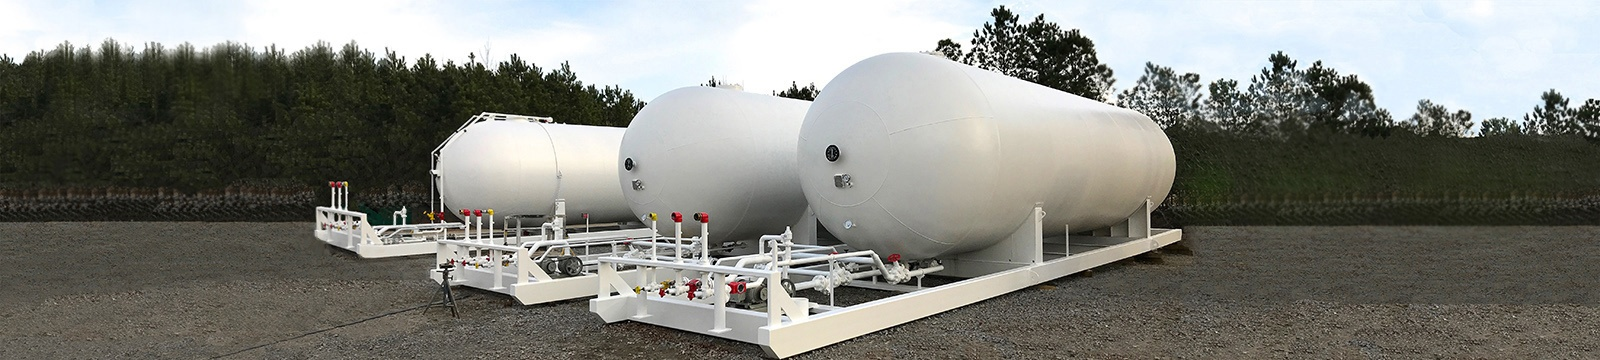 Portable Propane LPG Storage Skids for Sale_4